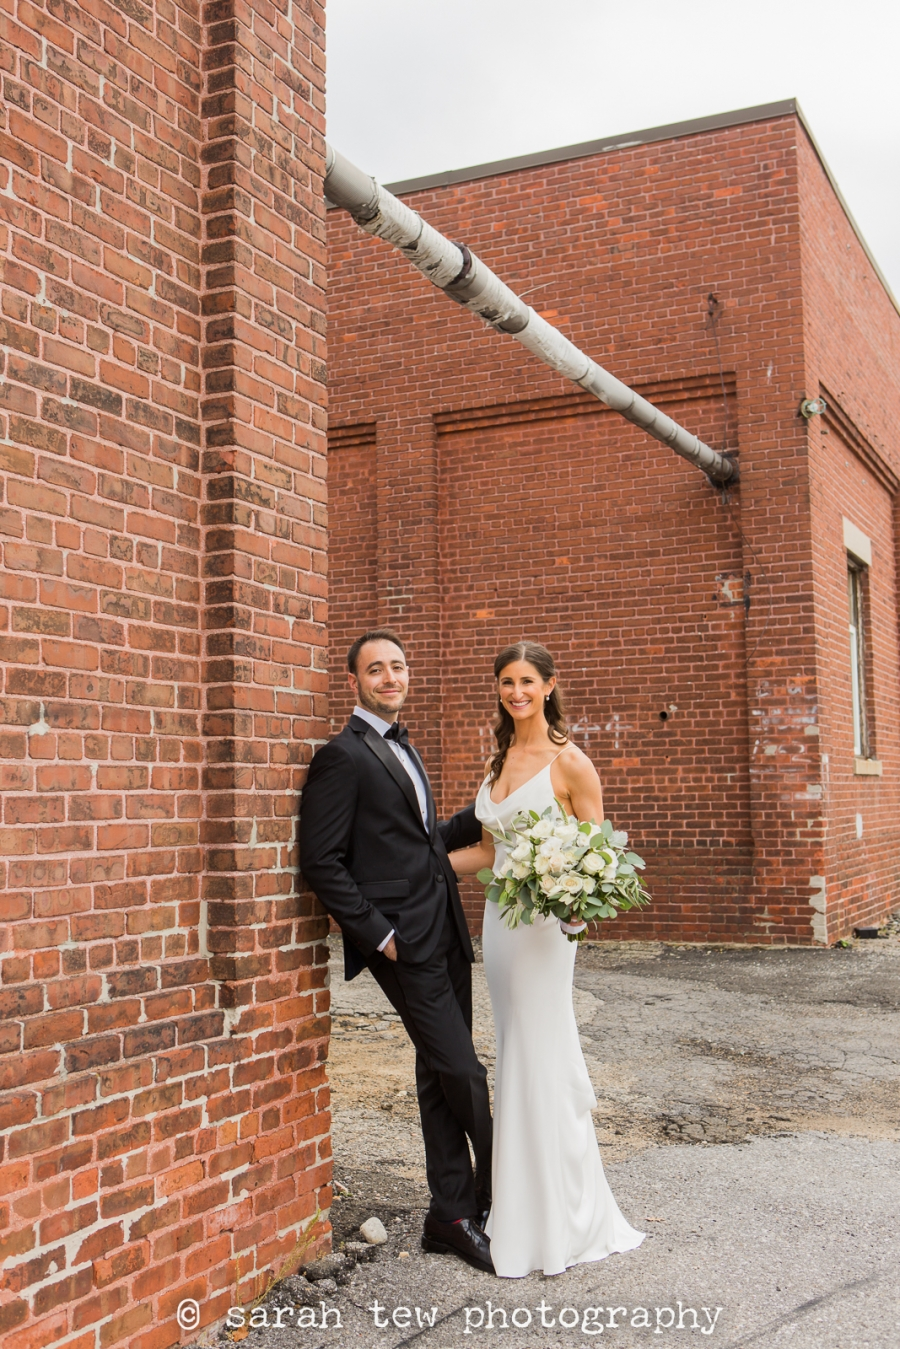 Noah & Erica's Modern Fall Wedding at The Loading Dock in Stamford, Connecticut